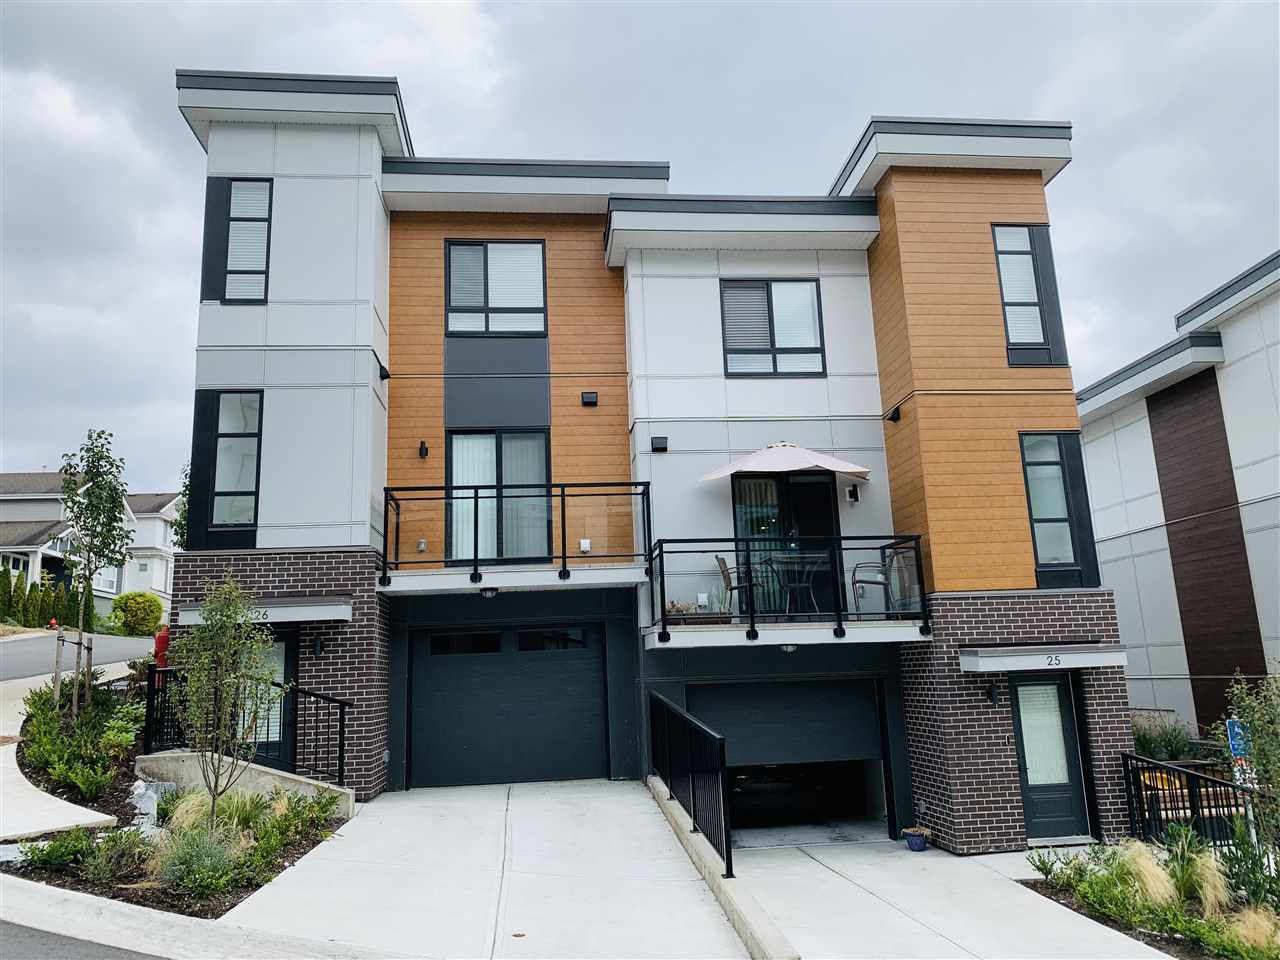 26 20087 68 AVENUE - Willoughby Heights Townhouse for sale, 3 Bedrooms (R2528695) - #2